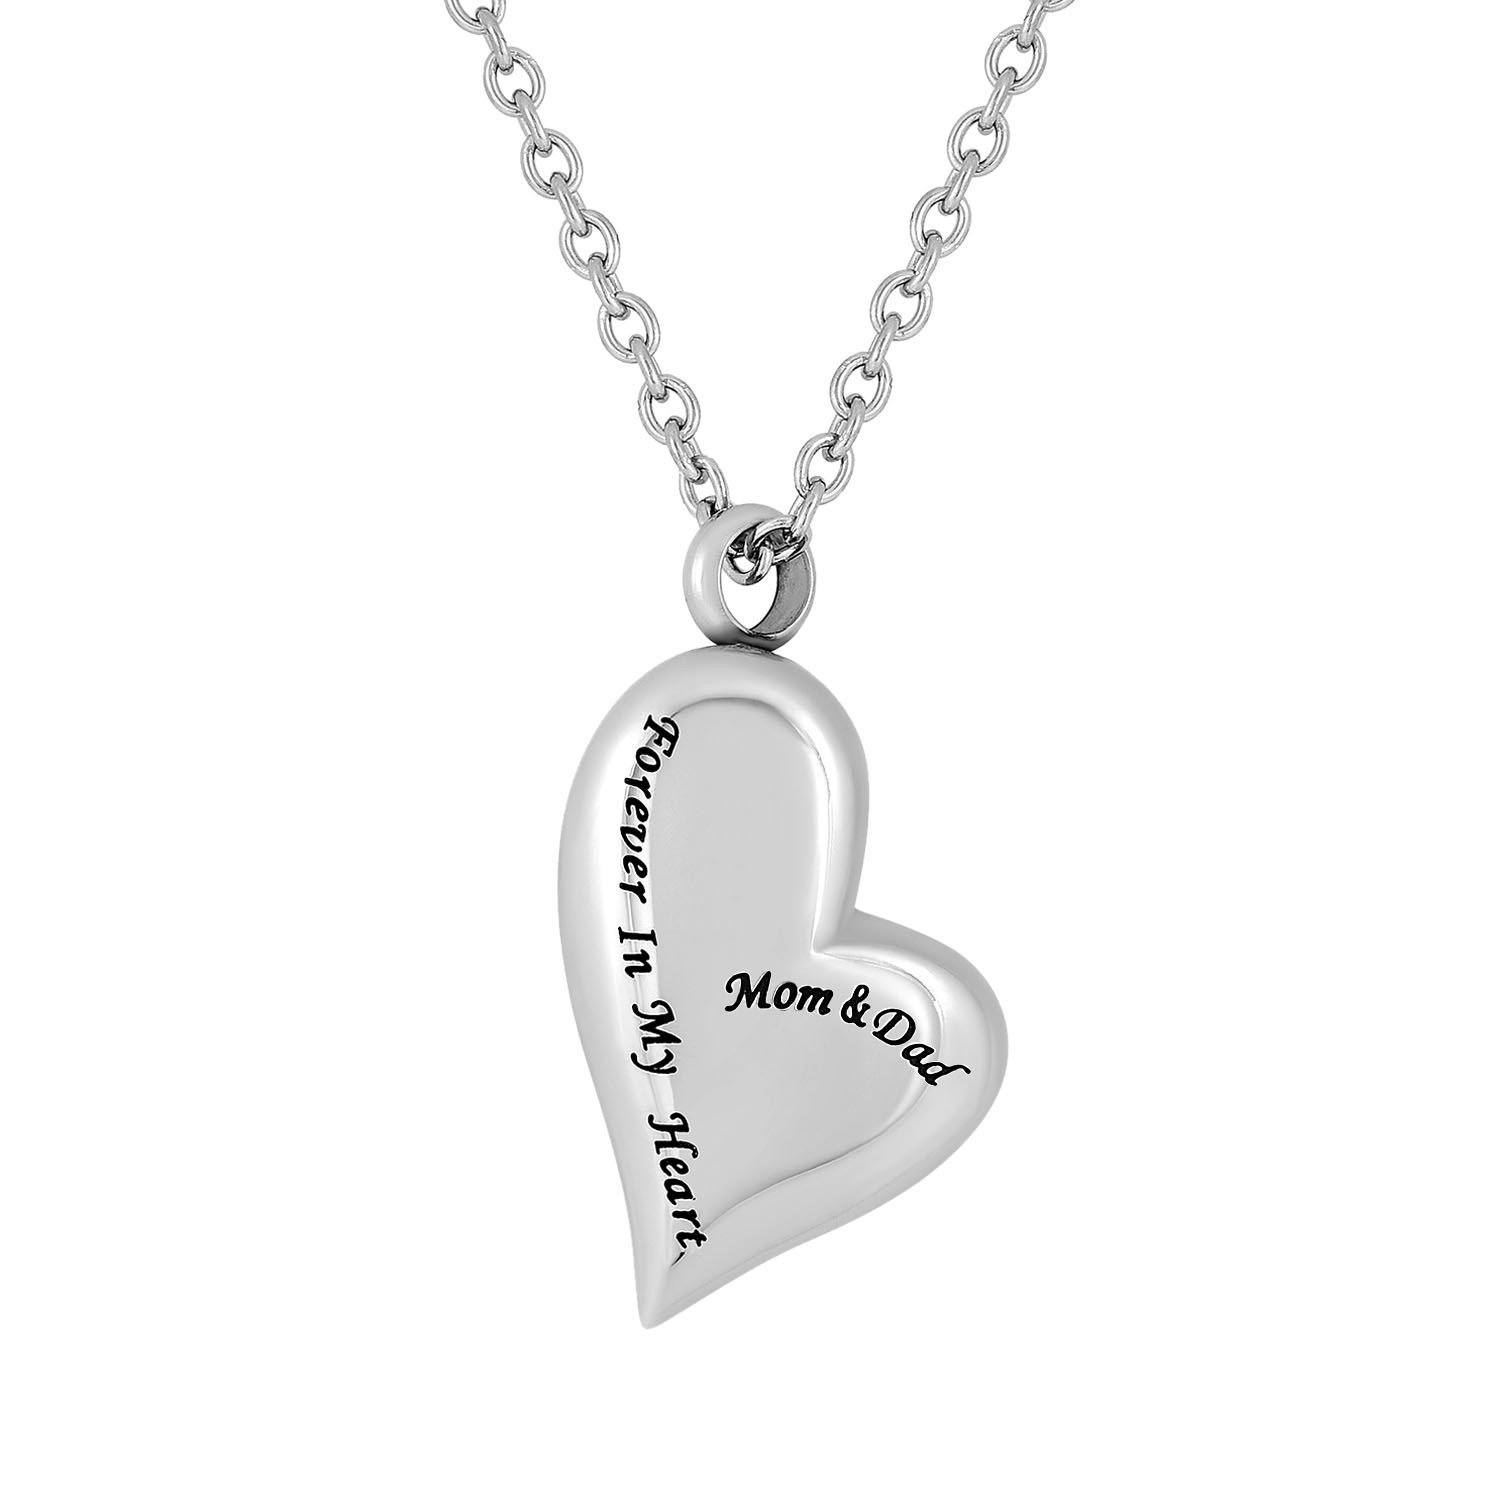 Mom and dad forever in my heart cremation necklace jewelry for ashes cremation jewelry necklace for ashes mom and dad forever in my heart aloadofball Choice Image